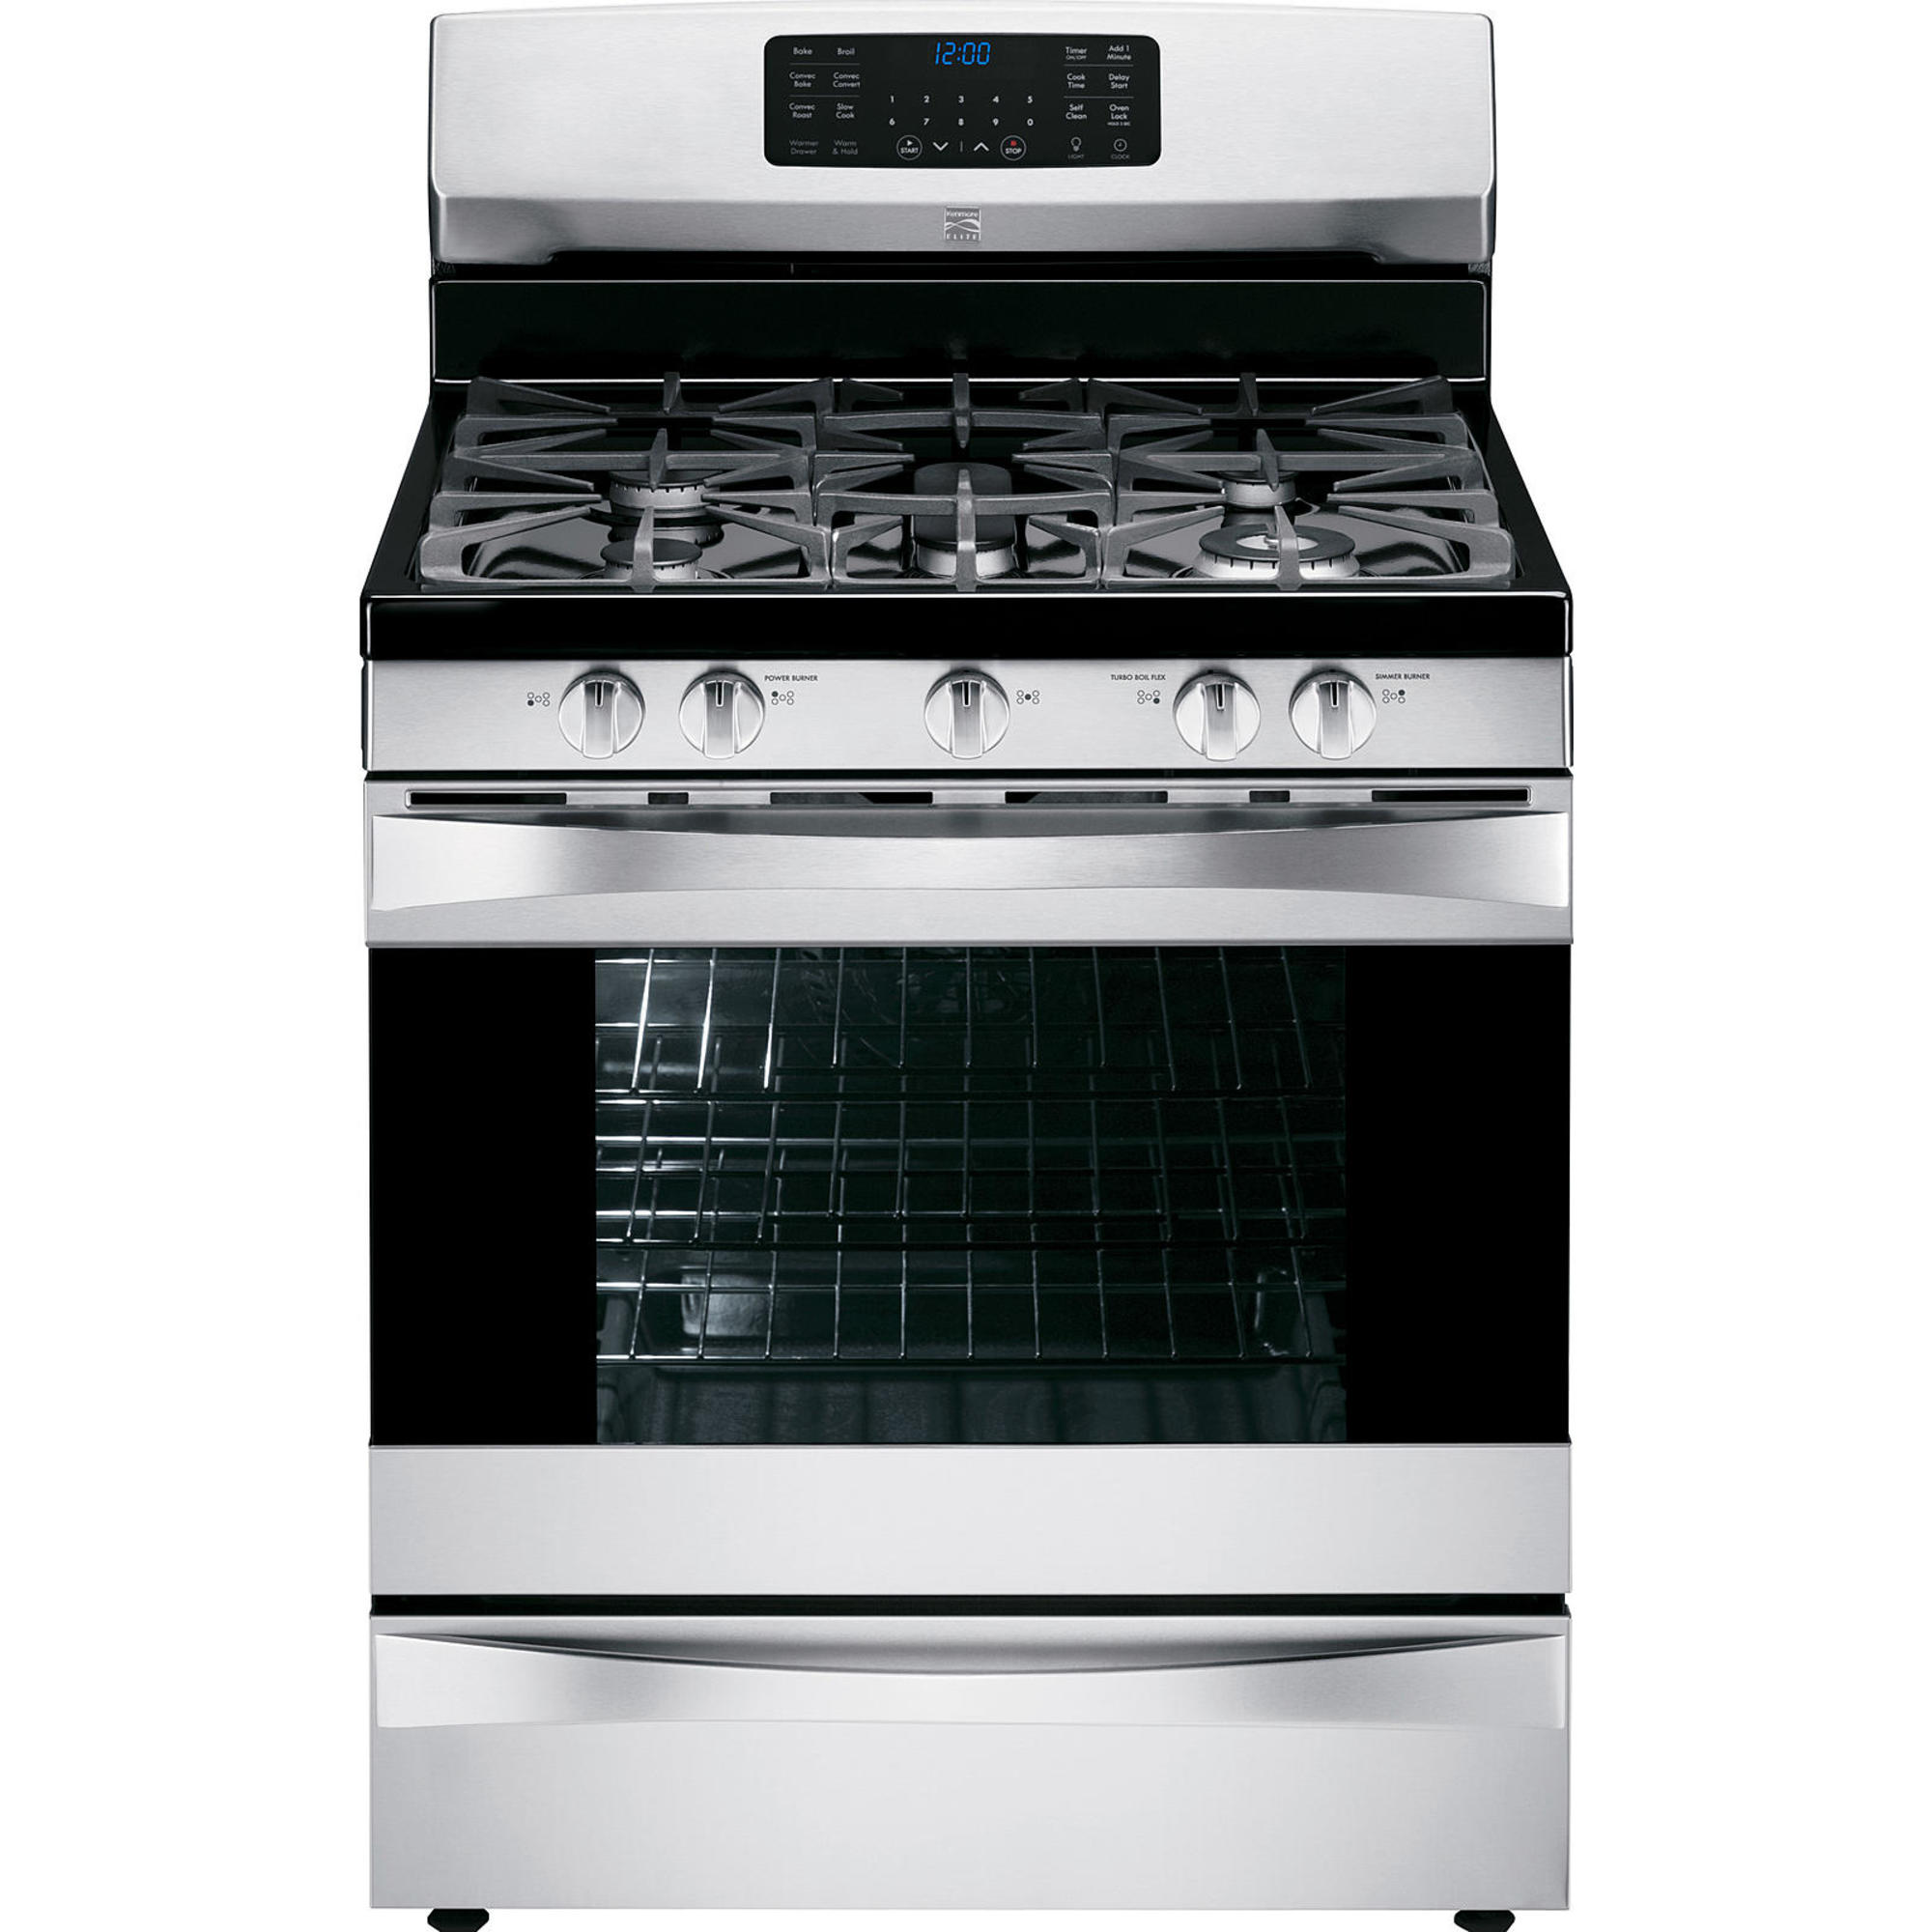 Kenmore Elite 75233  5.6 cu. ft. Gas Range w/ True Convection - Stainless Steel